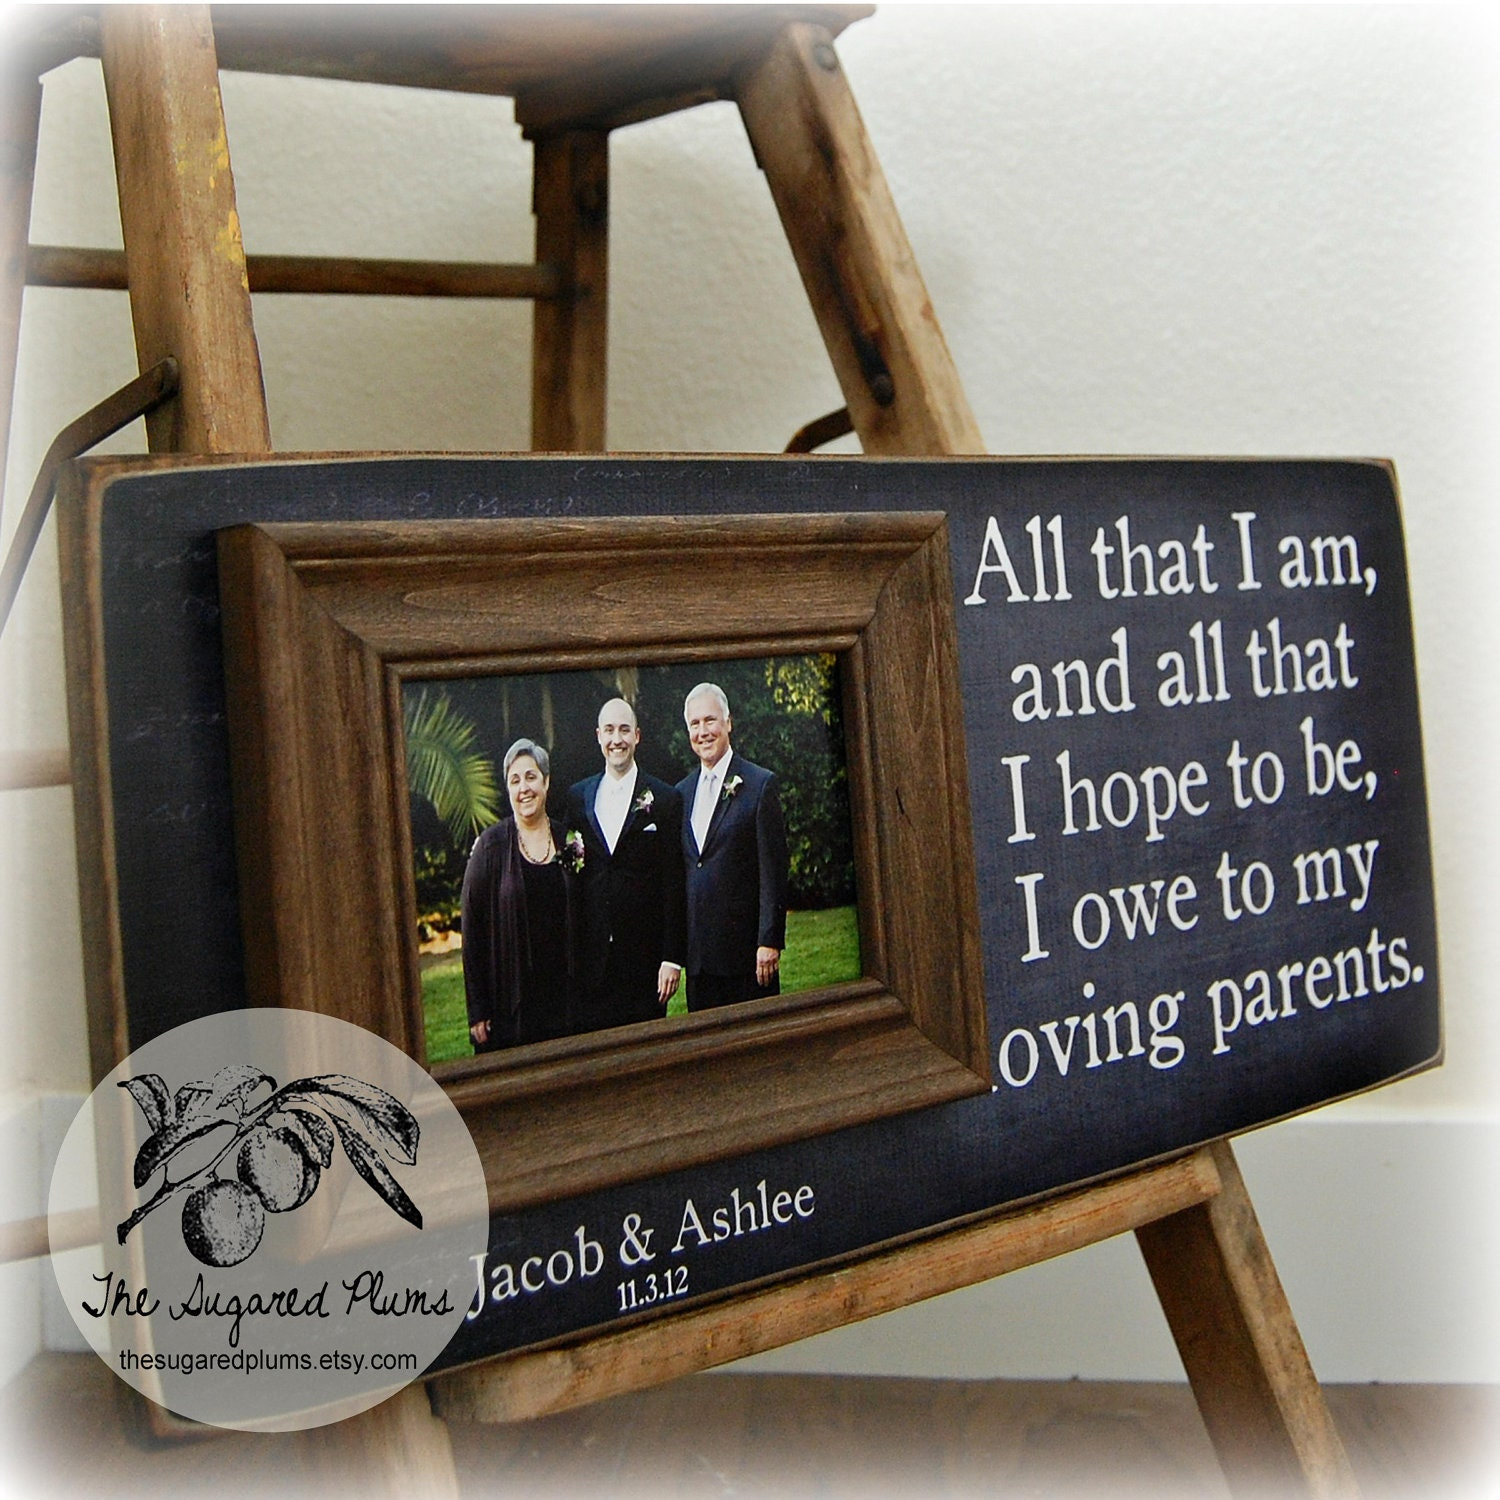 Wedding Gift Personalized Picture Frame : Parents Wedding Gift Personalized Picture Frame Custom 8x20-All That I ...